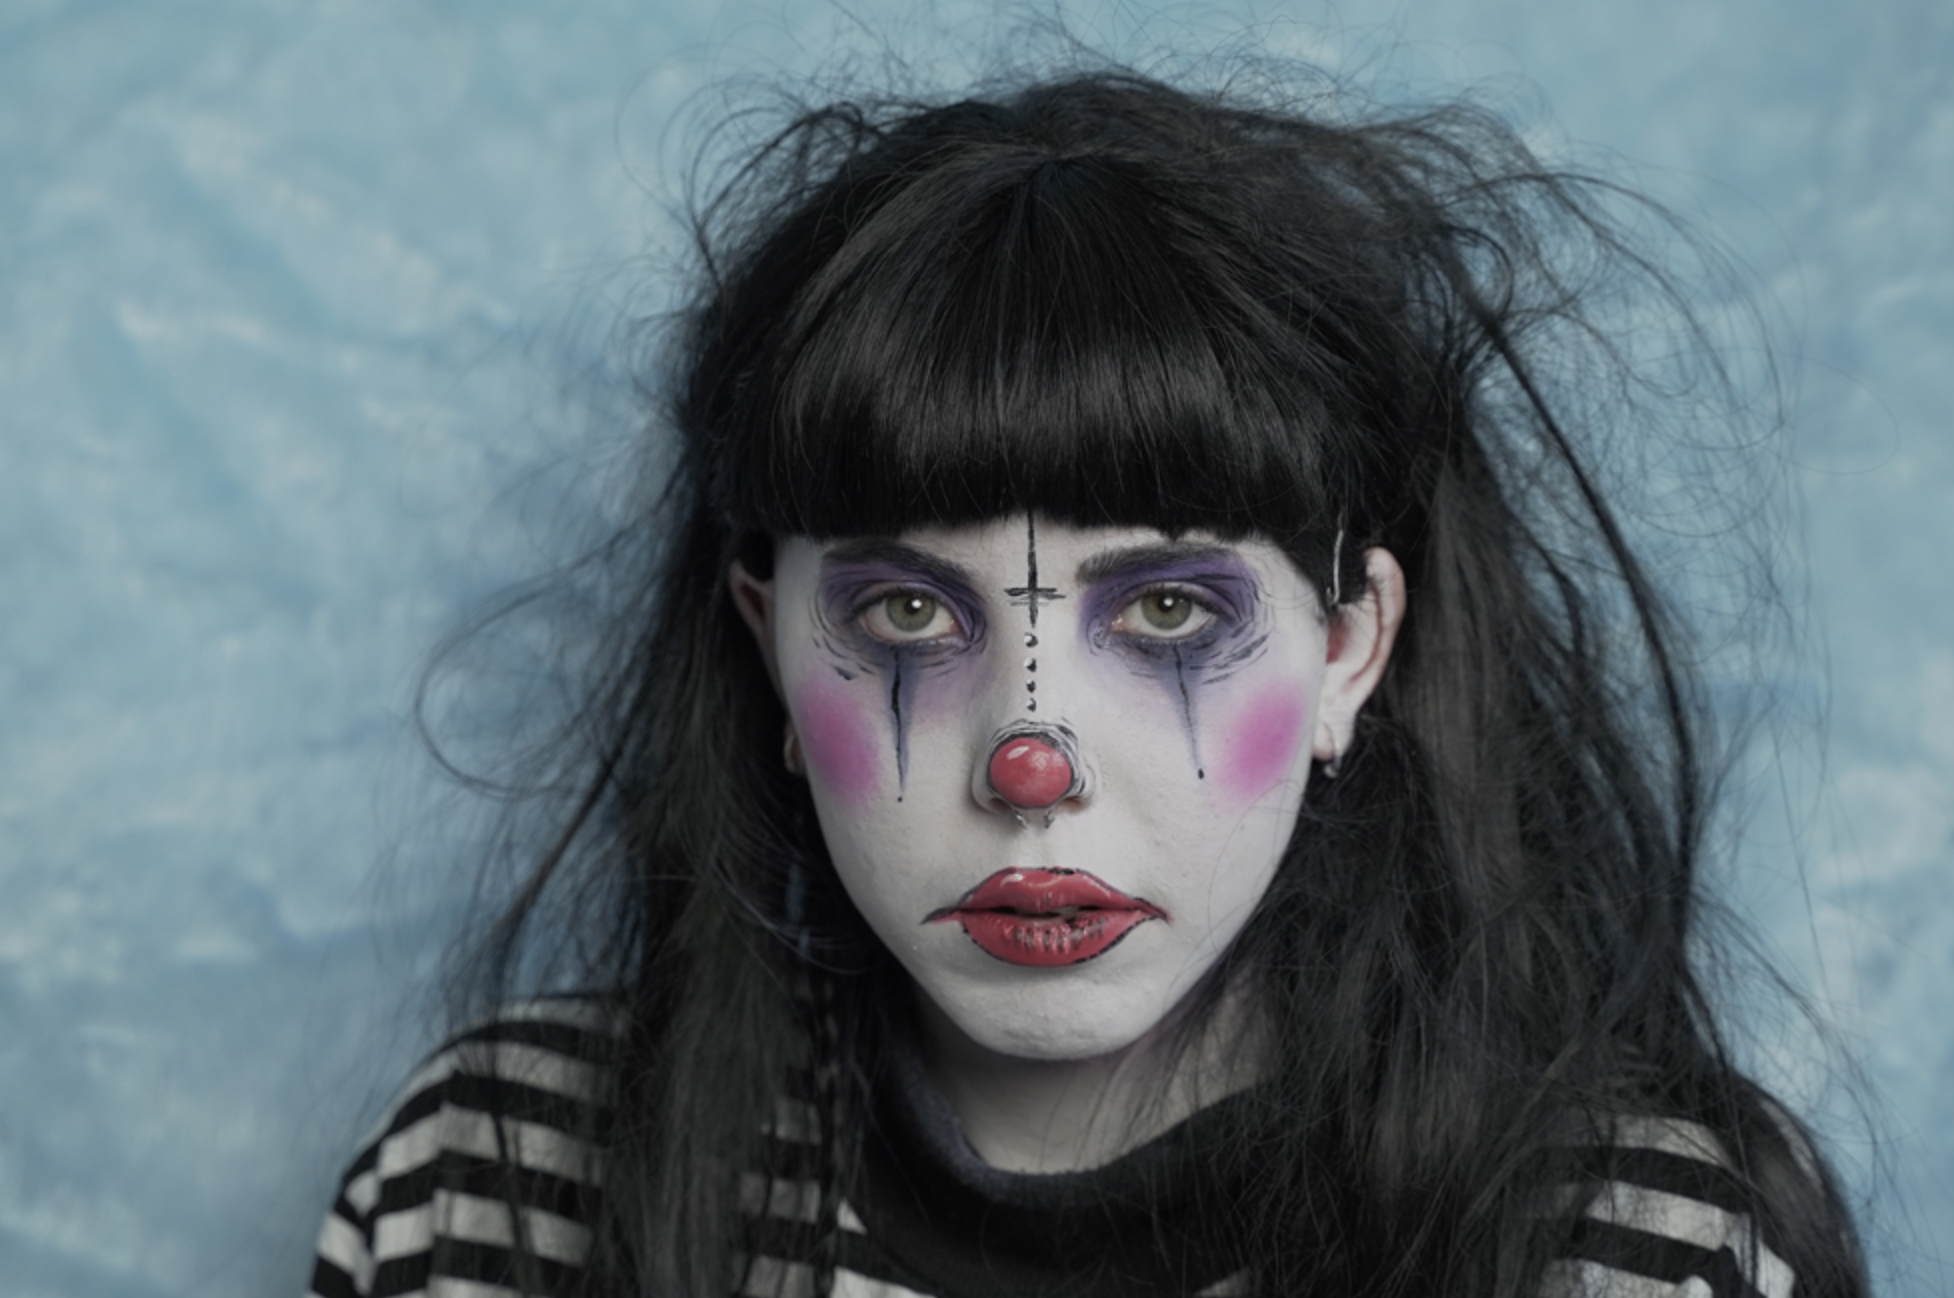 Remi is to the right, she is wearing a long sleeved thin striped black and white t-shirt. She has clown style makeup on with a gothic twist. Red lips, cheeks and nose with dark smudged eye makeup. Her hair is long and dark with a short full fringe. She is facing the camera with a neutral expression. The background is a light baby blue faux fur blanket.